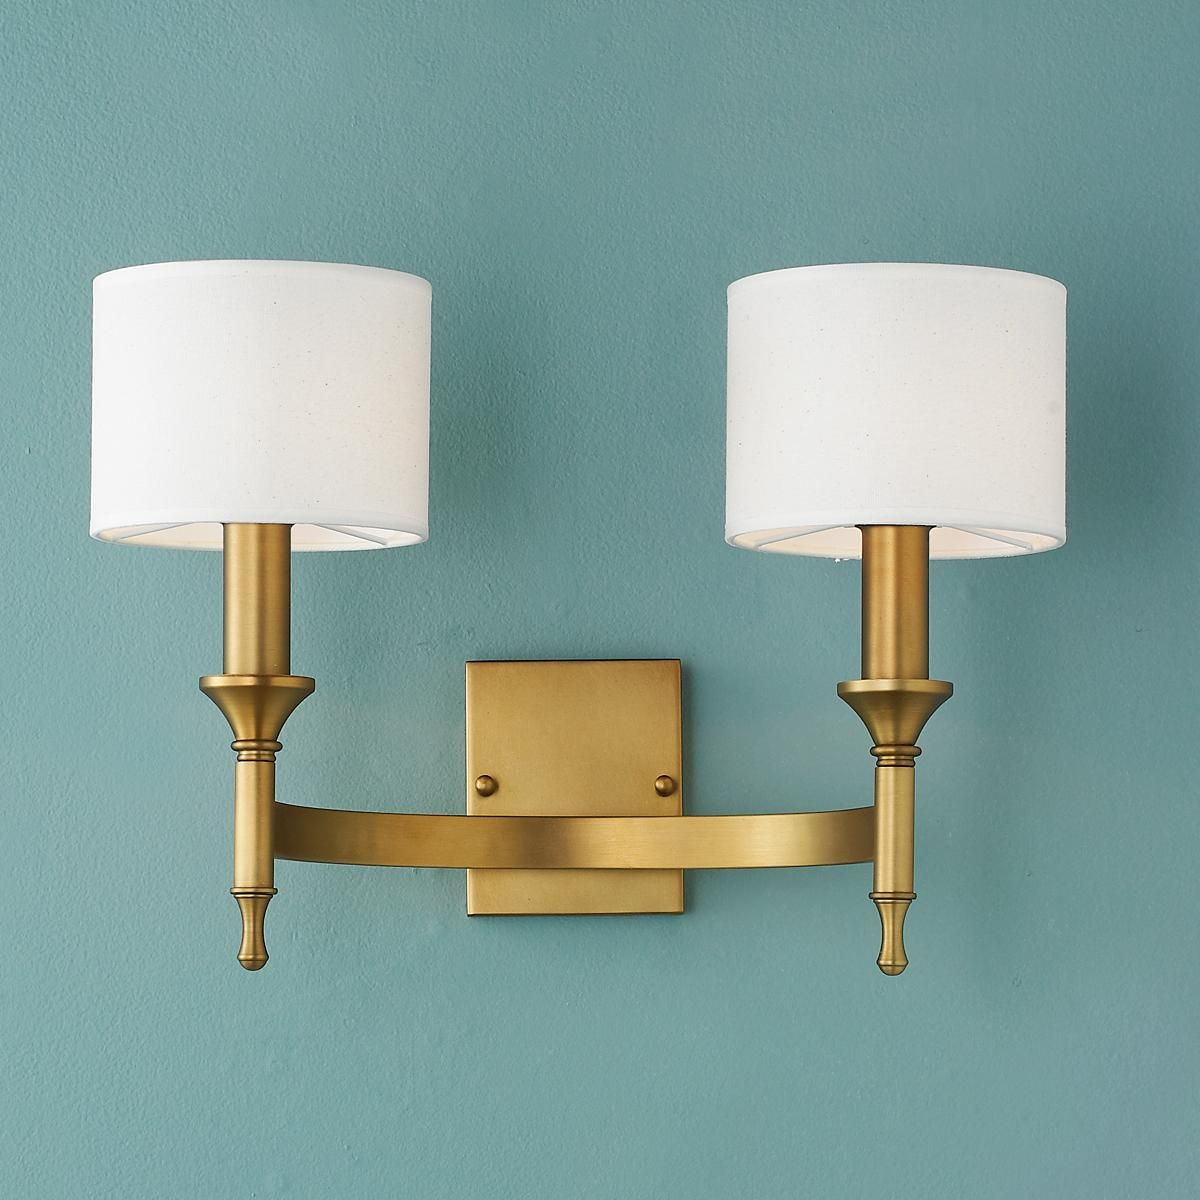 Metrolume 2 light wall sconce light walls wall sconces and drum sconces go wchandelier metrolume 2 light wall sconce sconces match chandelier if arubaitofo Gallery